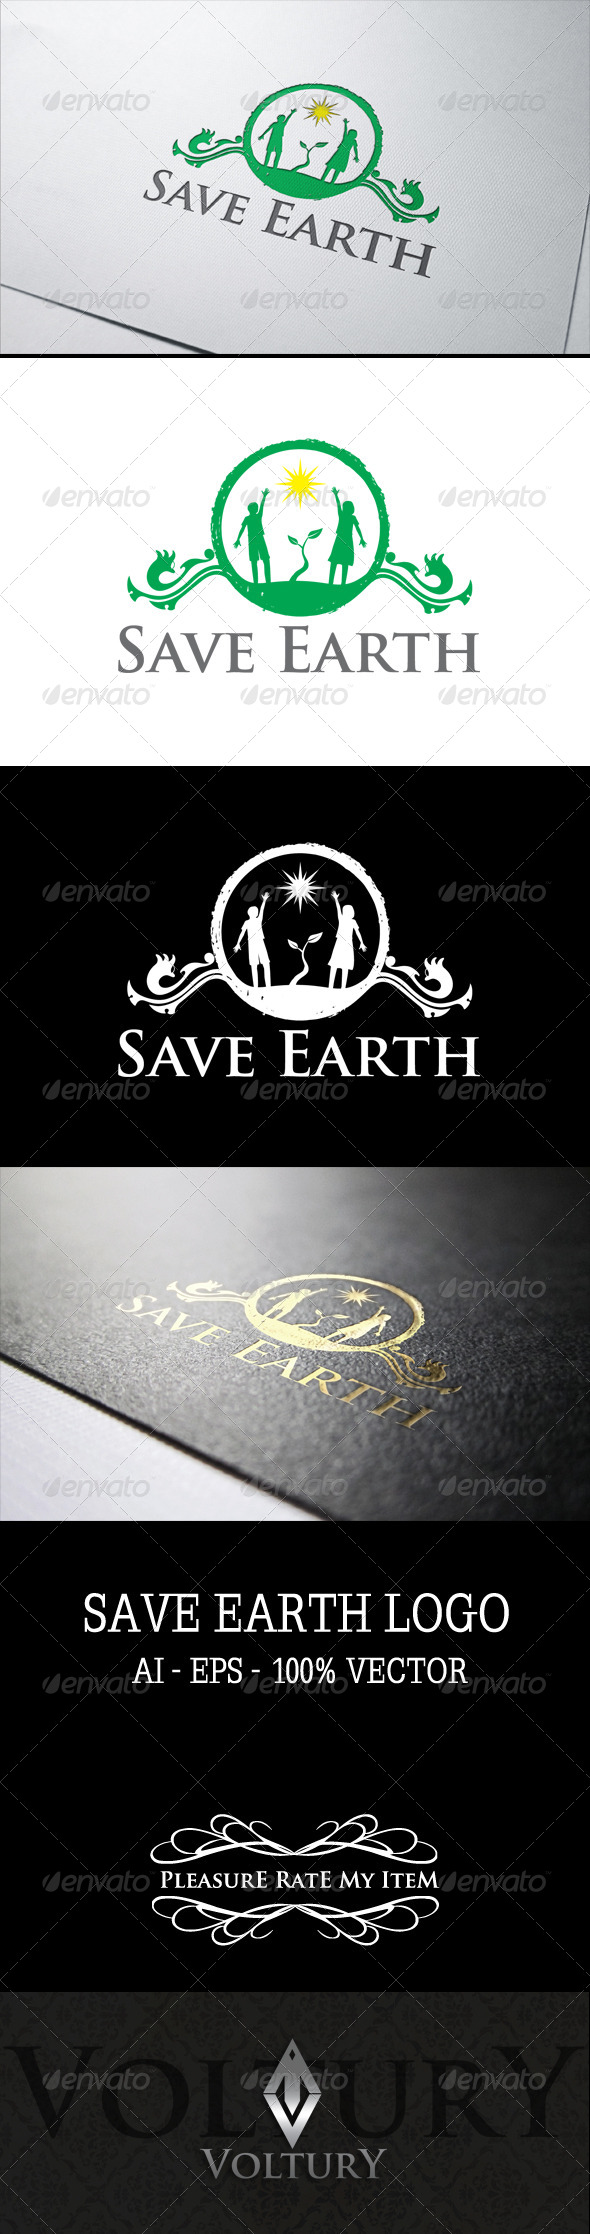 GraphicRiver Save Earth Logo 7511884